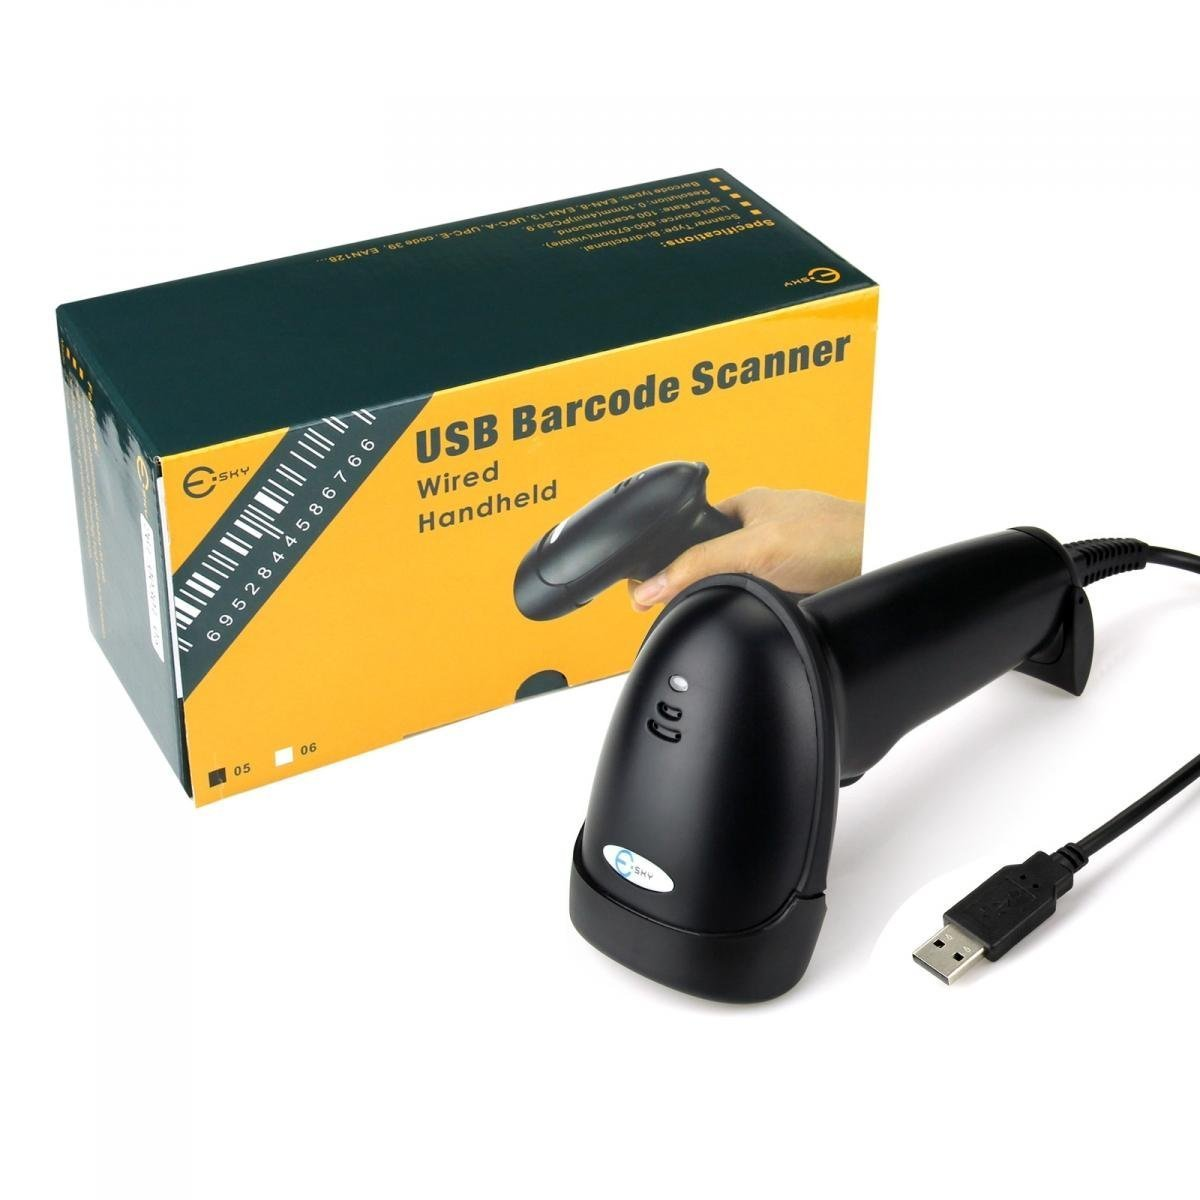 Buy EskyR ES005 Automatic Scan Manual Handheld USB BarCode Scanner ReaderUSB Wired Optical Laser Long Range Online At Low Prices In India